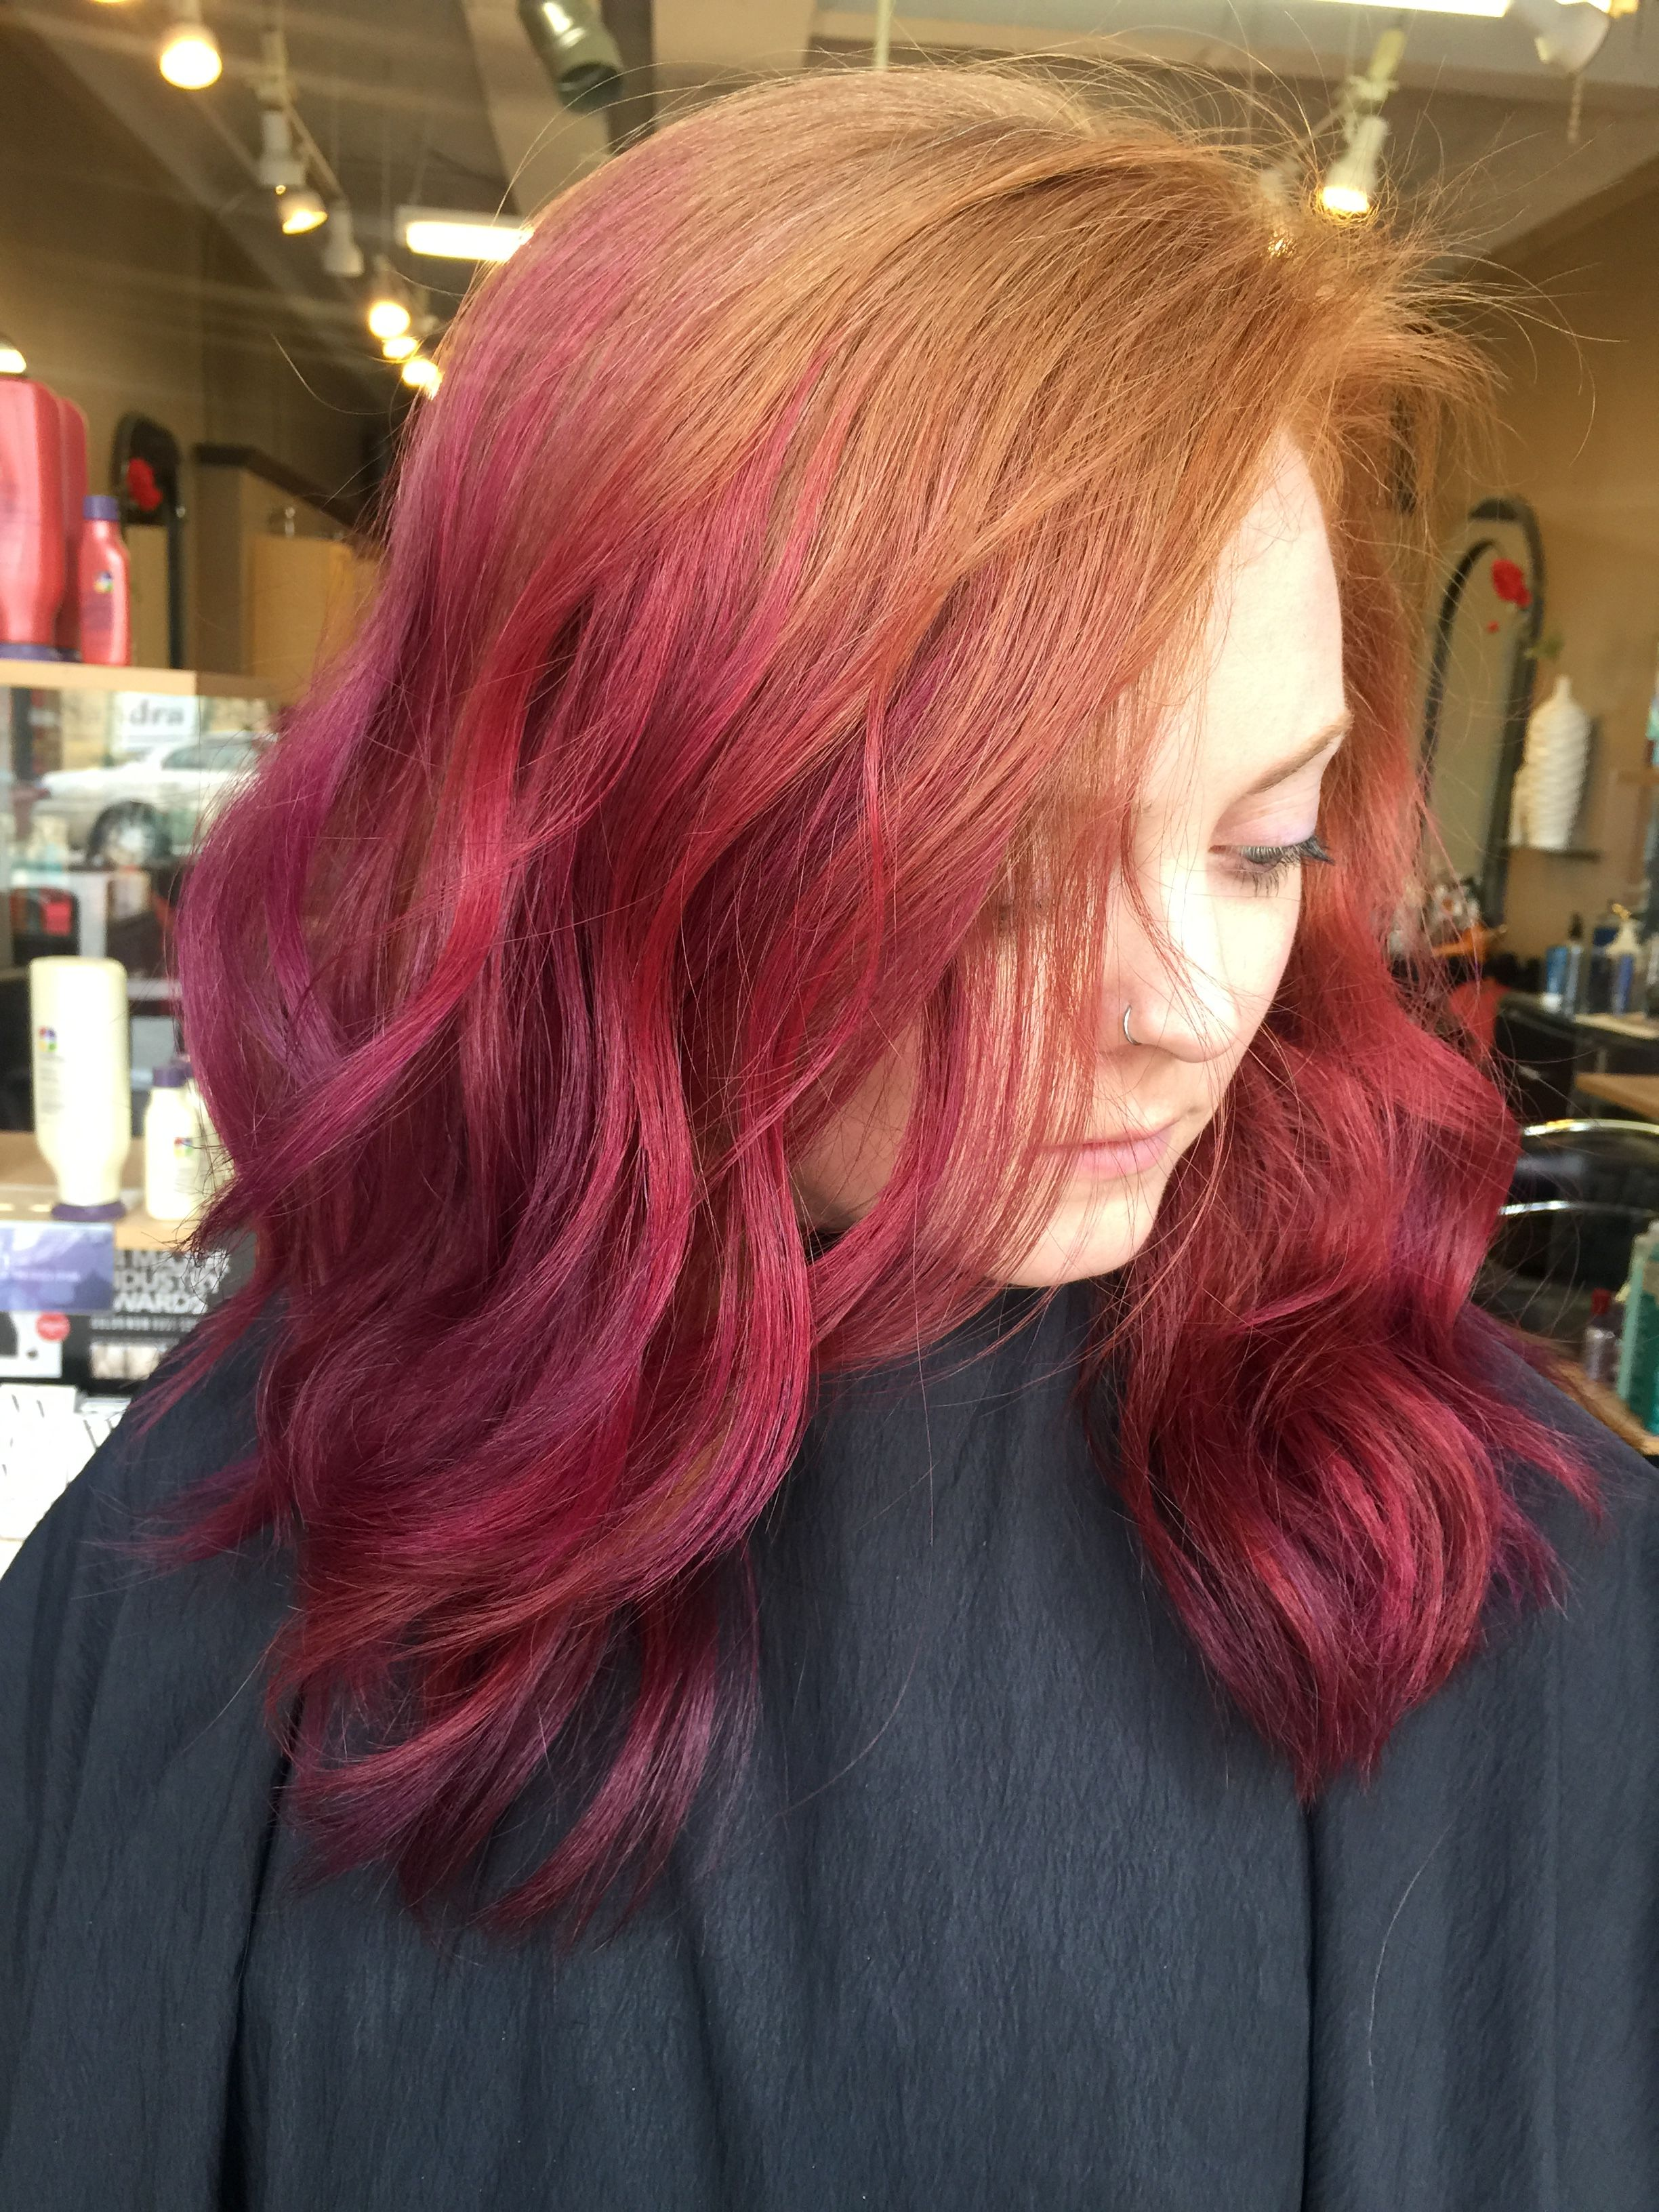 Natural Redhead With Purple And Pink Fade Natural Red Hair Dyed Hair Purple Hair Dye Tips